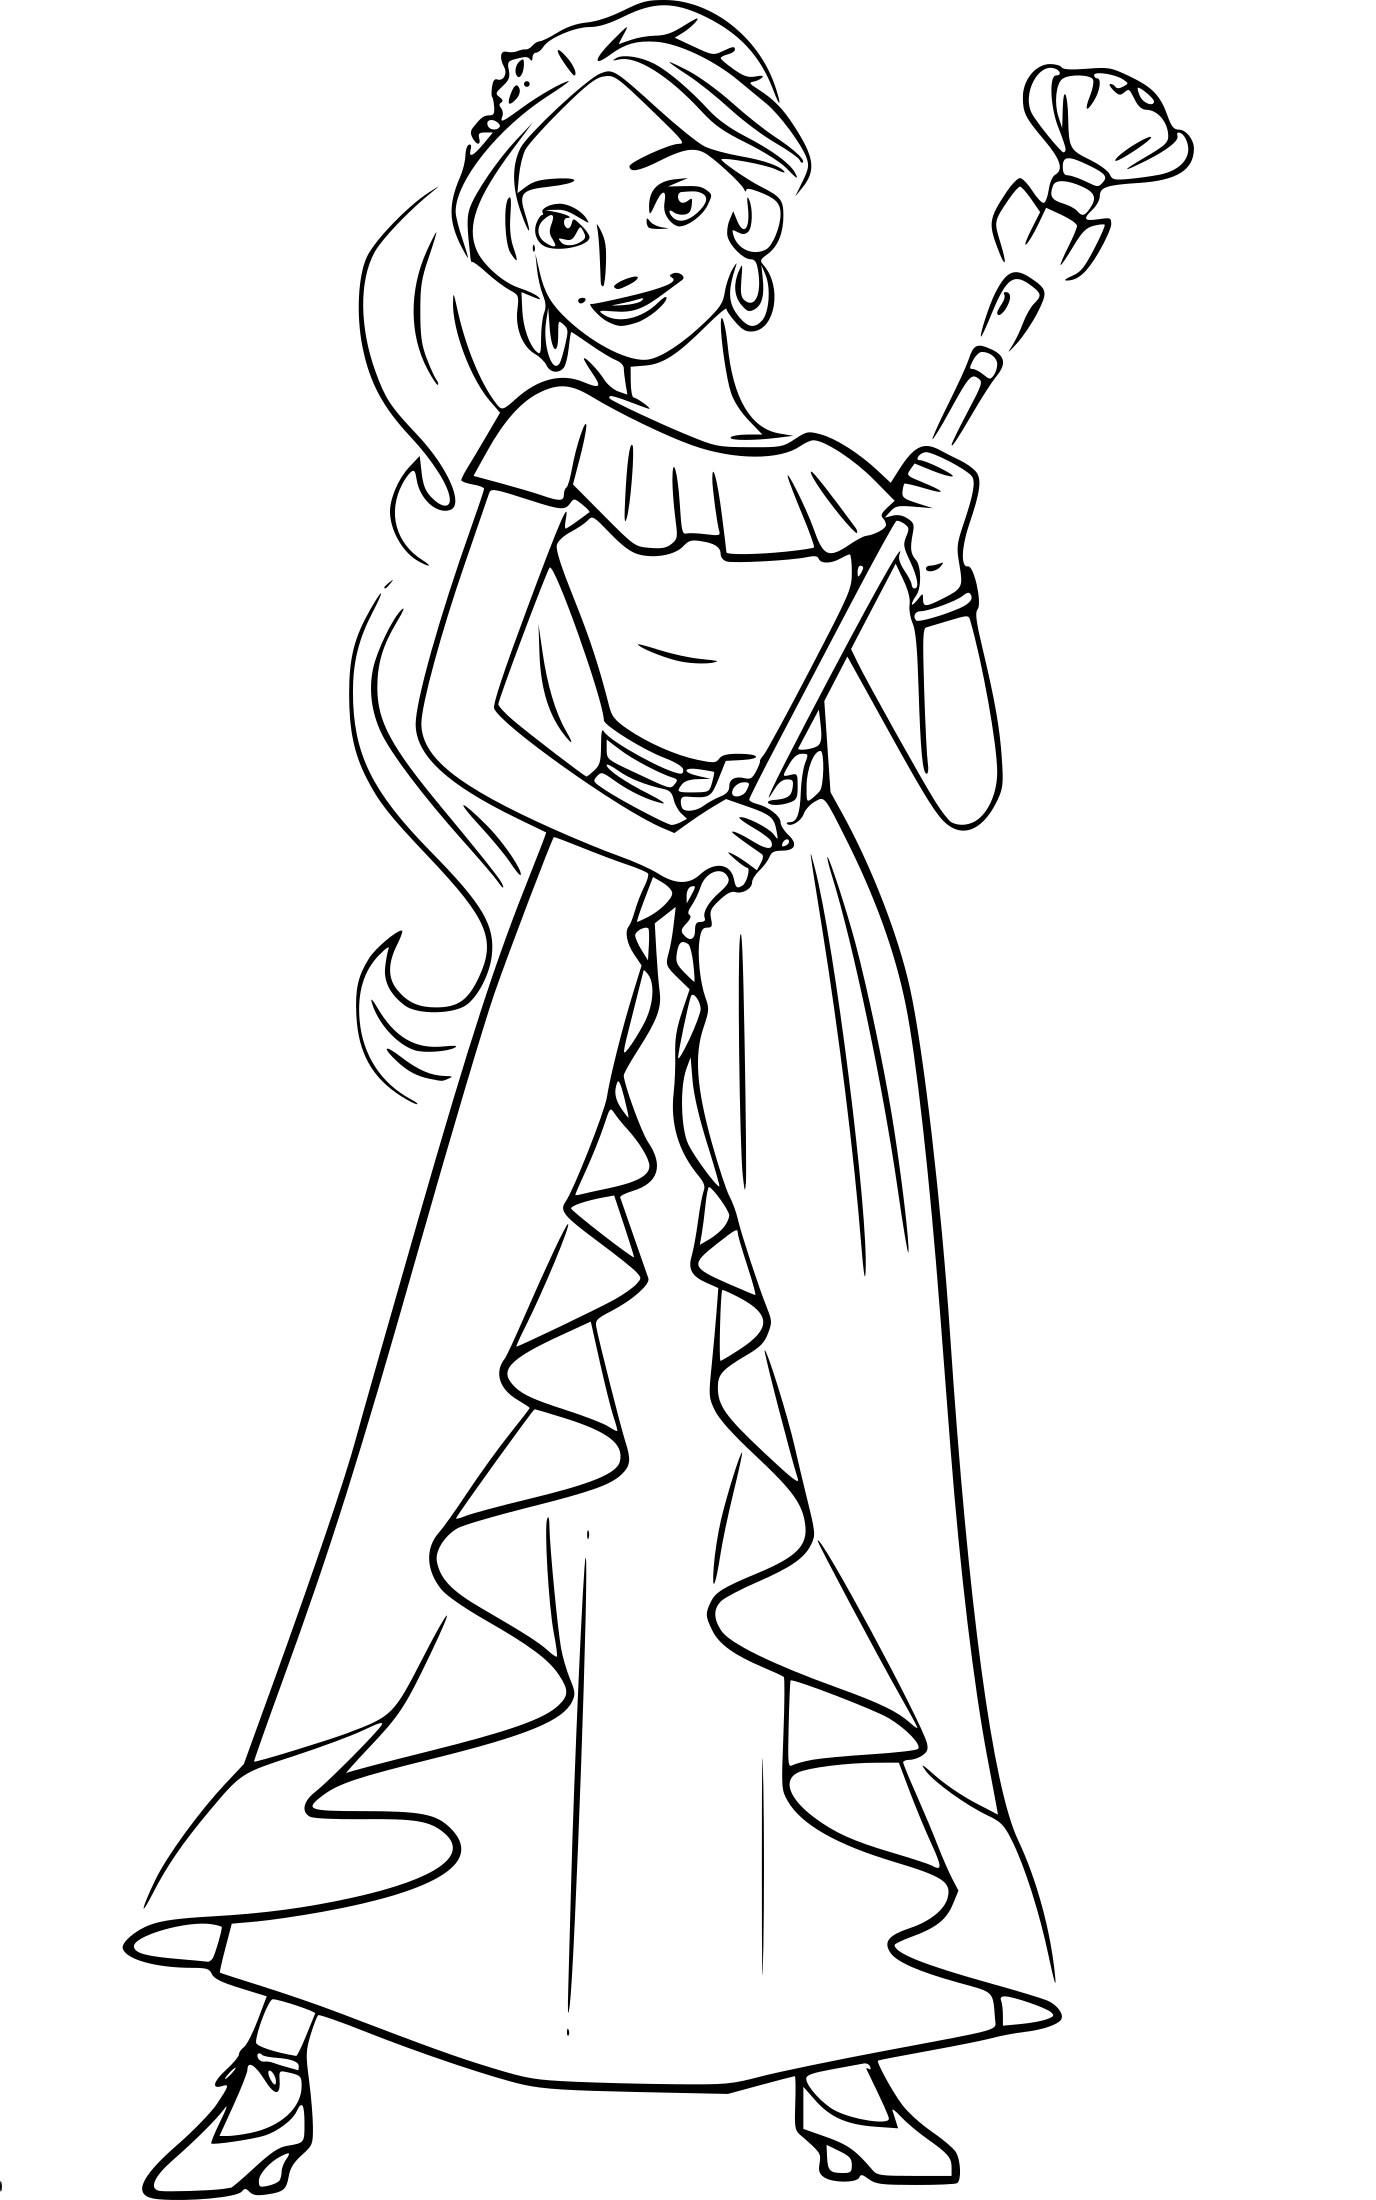 Elena Of Avalor Coloring Pages Best Coloring Pages For Kids Princess Coloring Pages Disney Coloring Pages Cartoon Coloring Pages